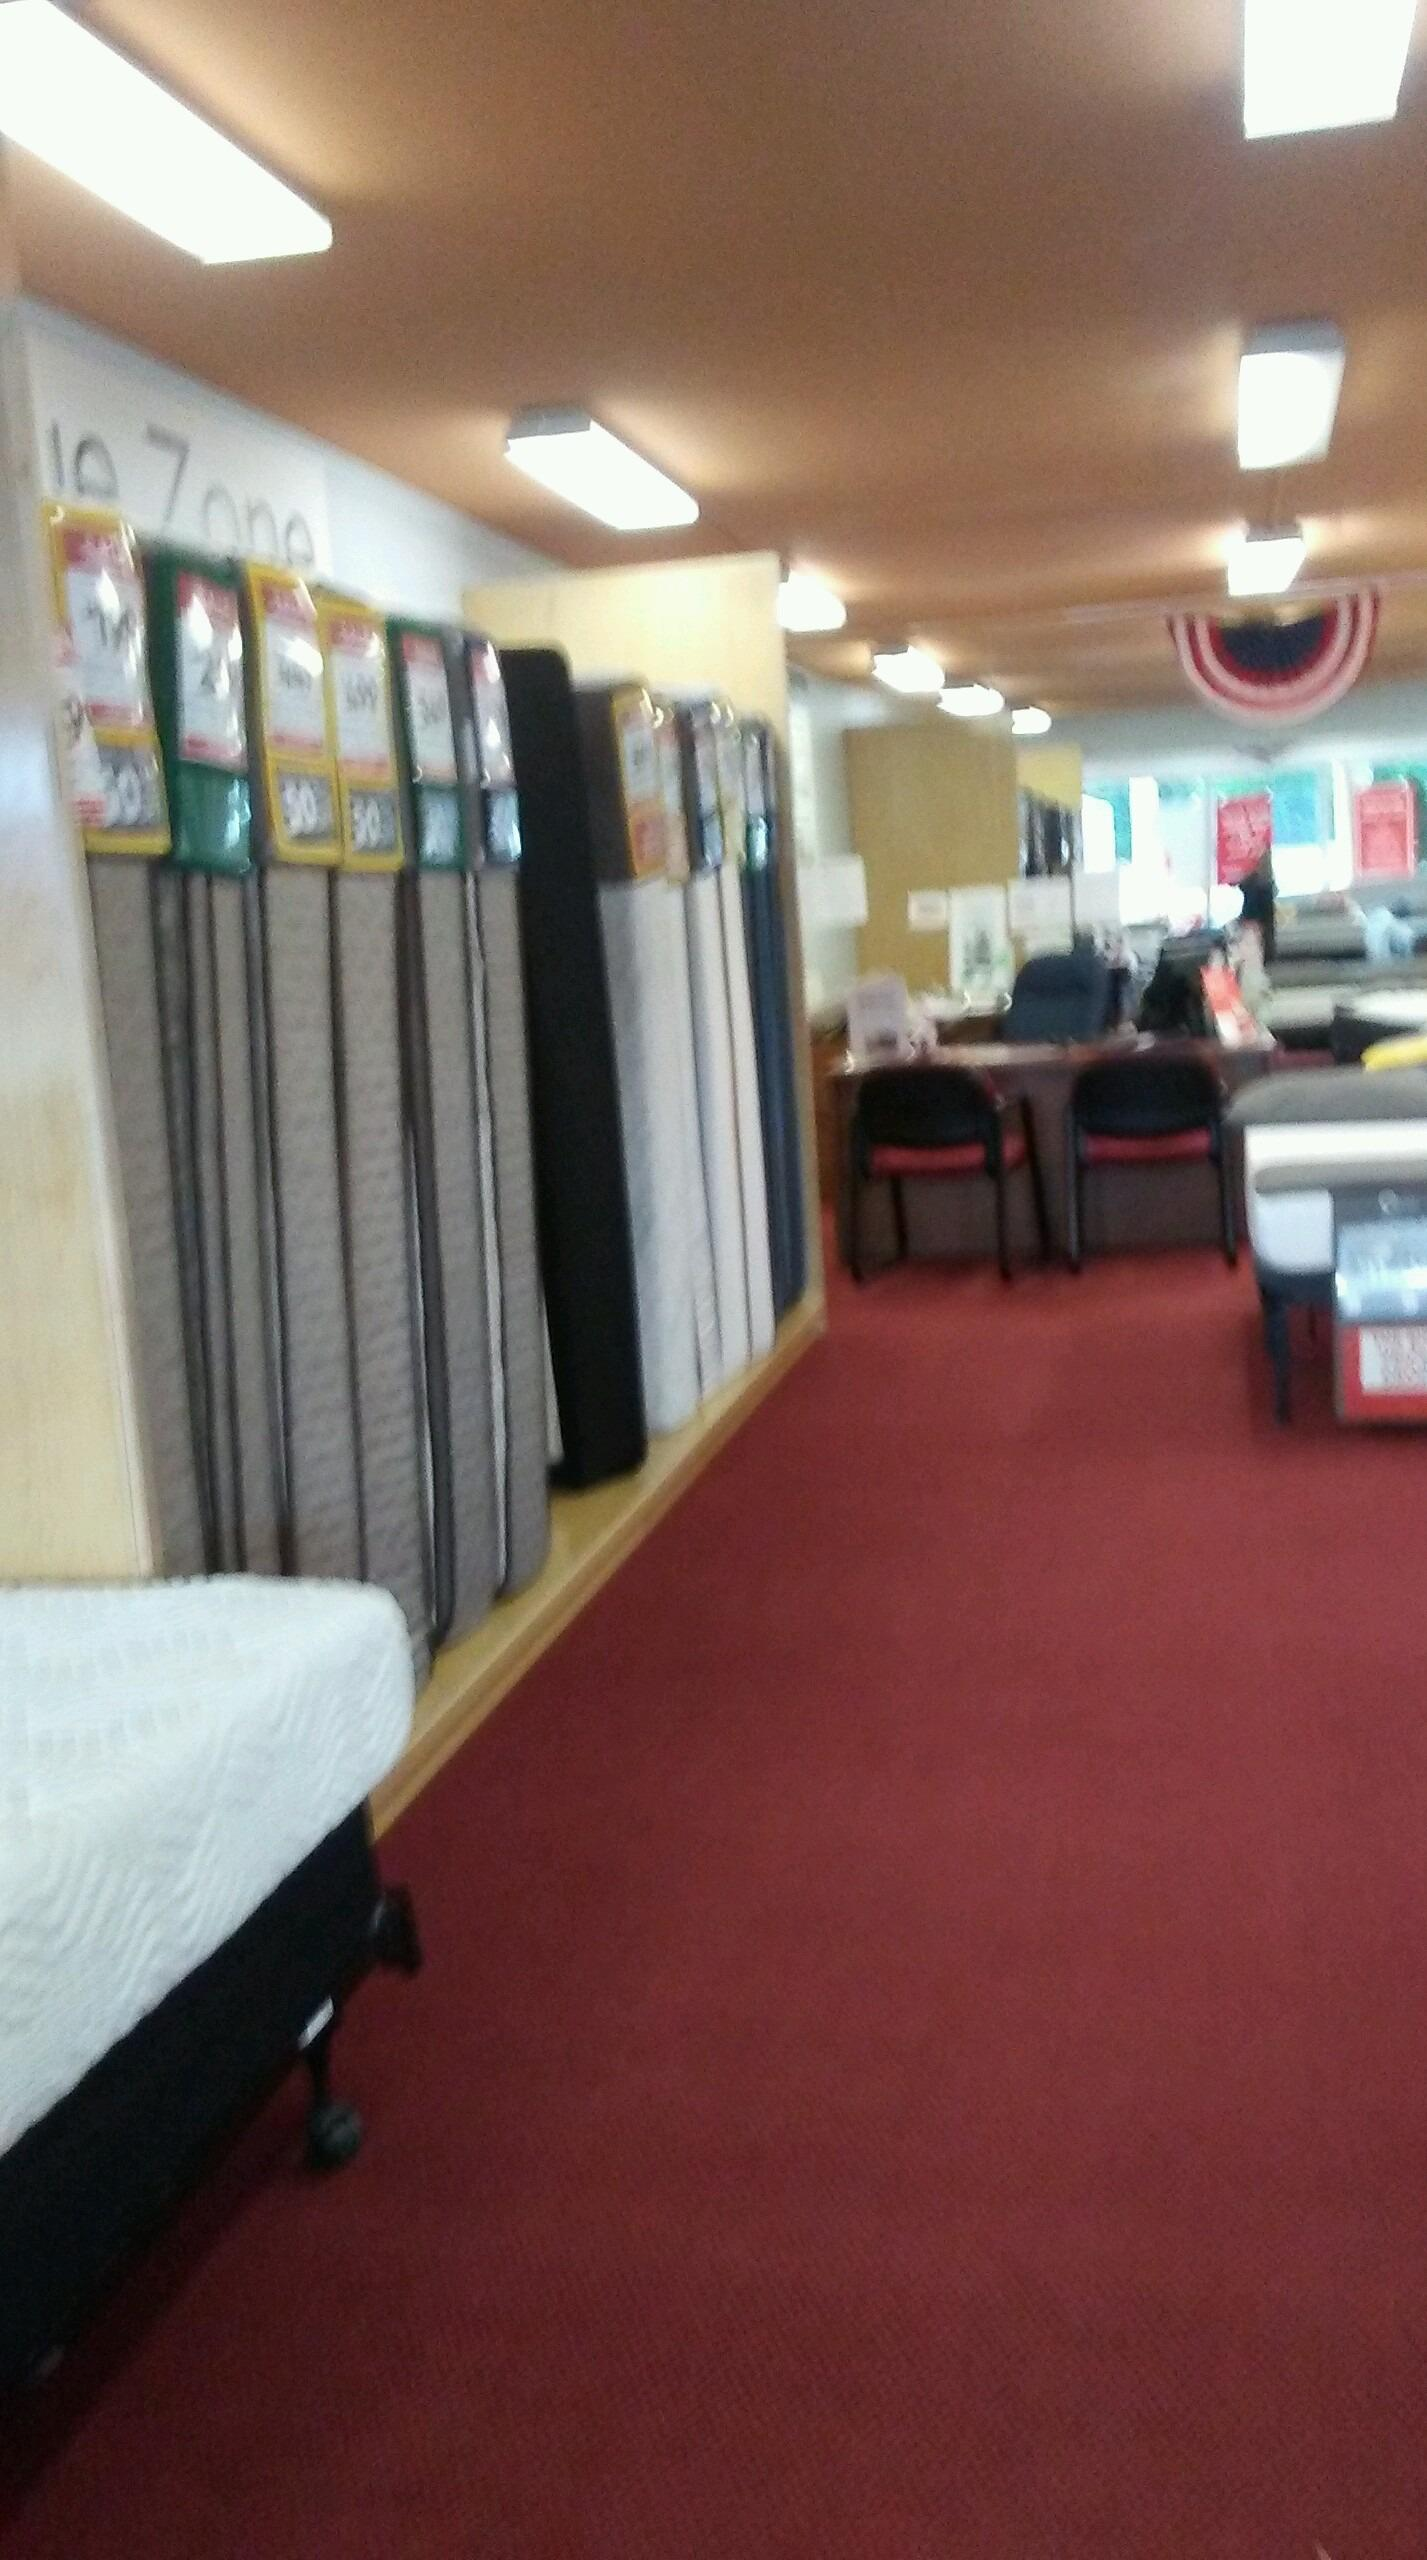 Mattress Firm Whitehall South image 6